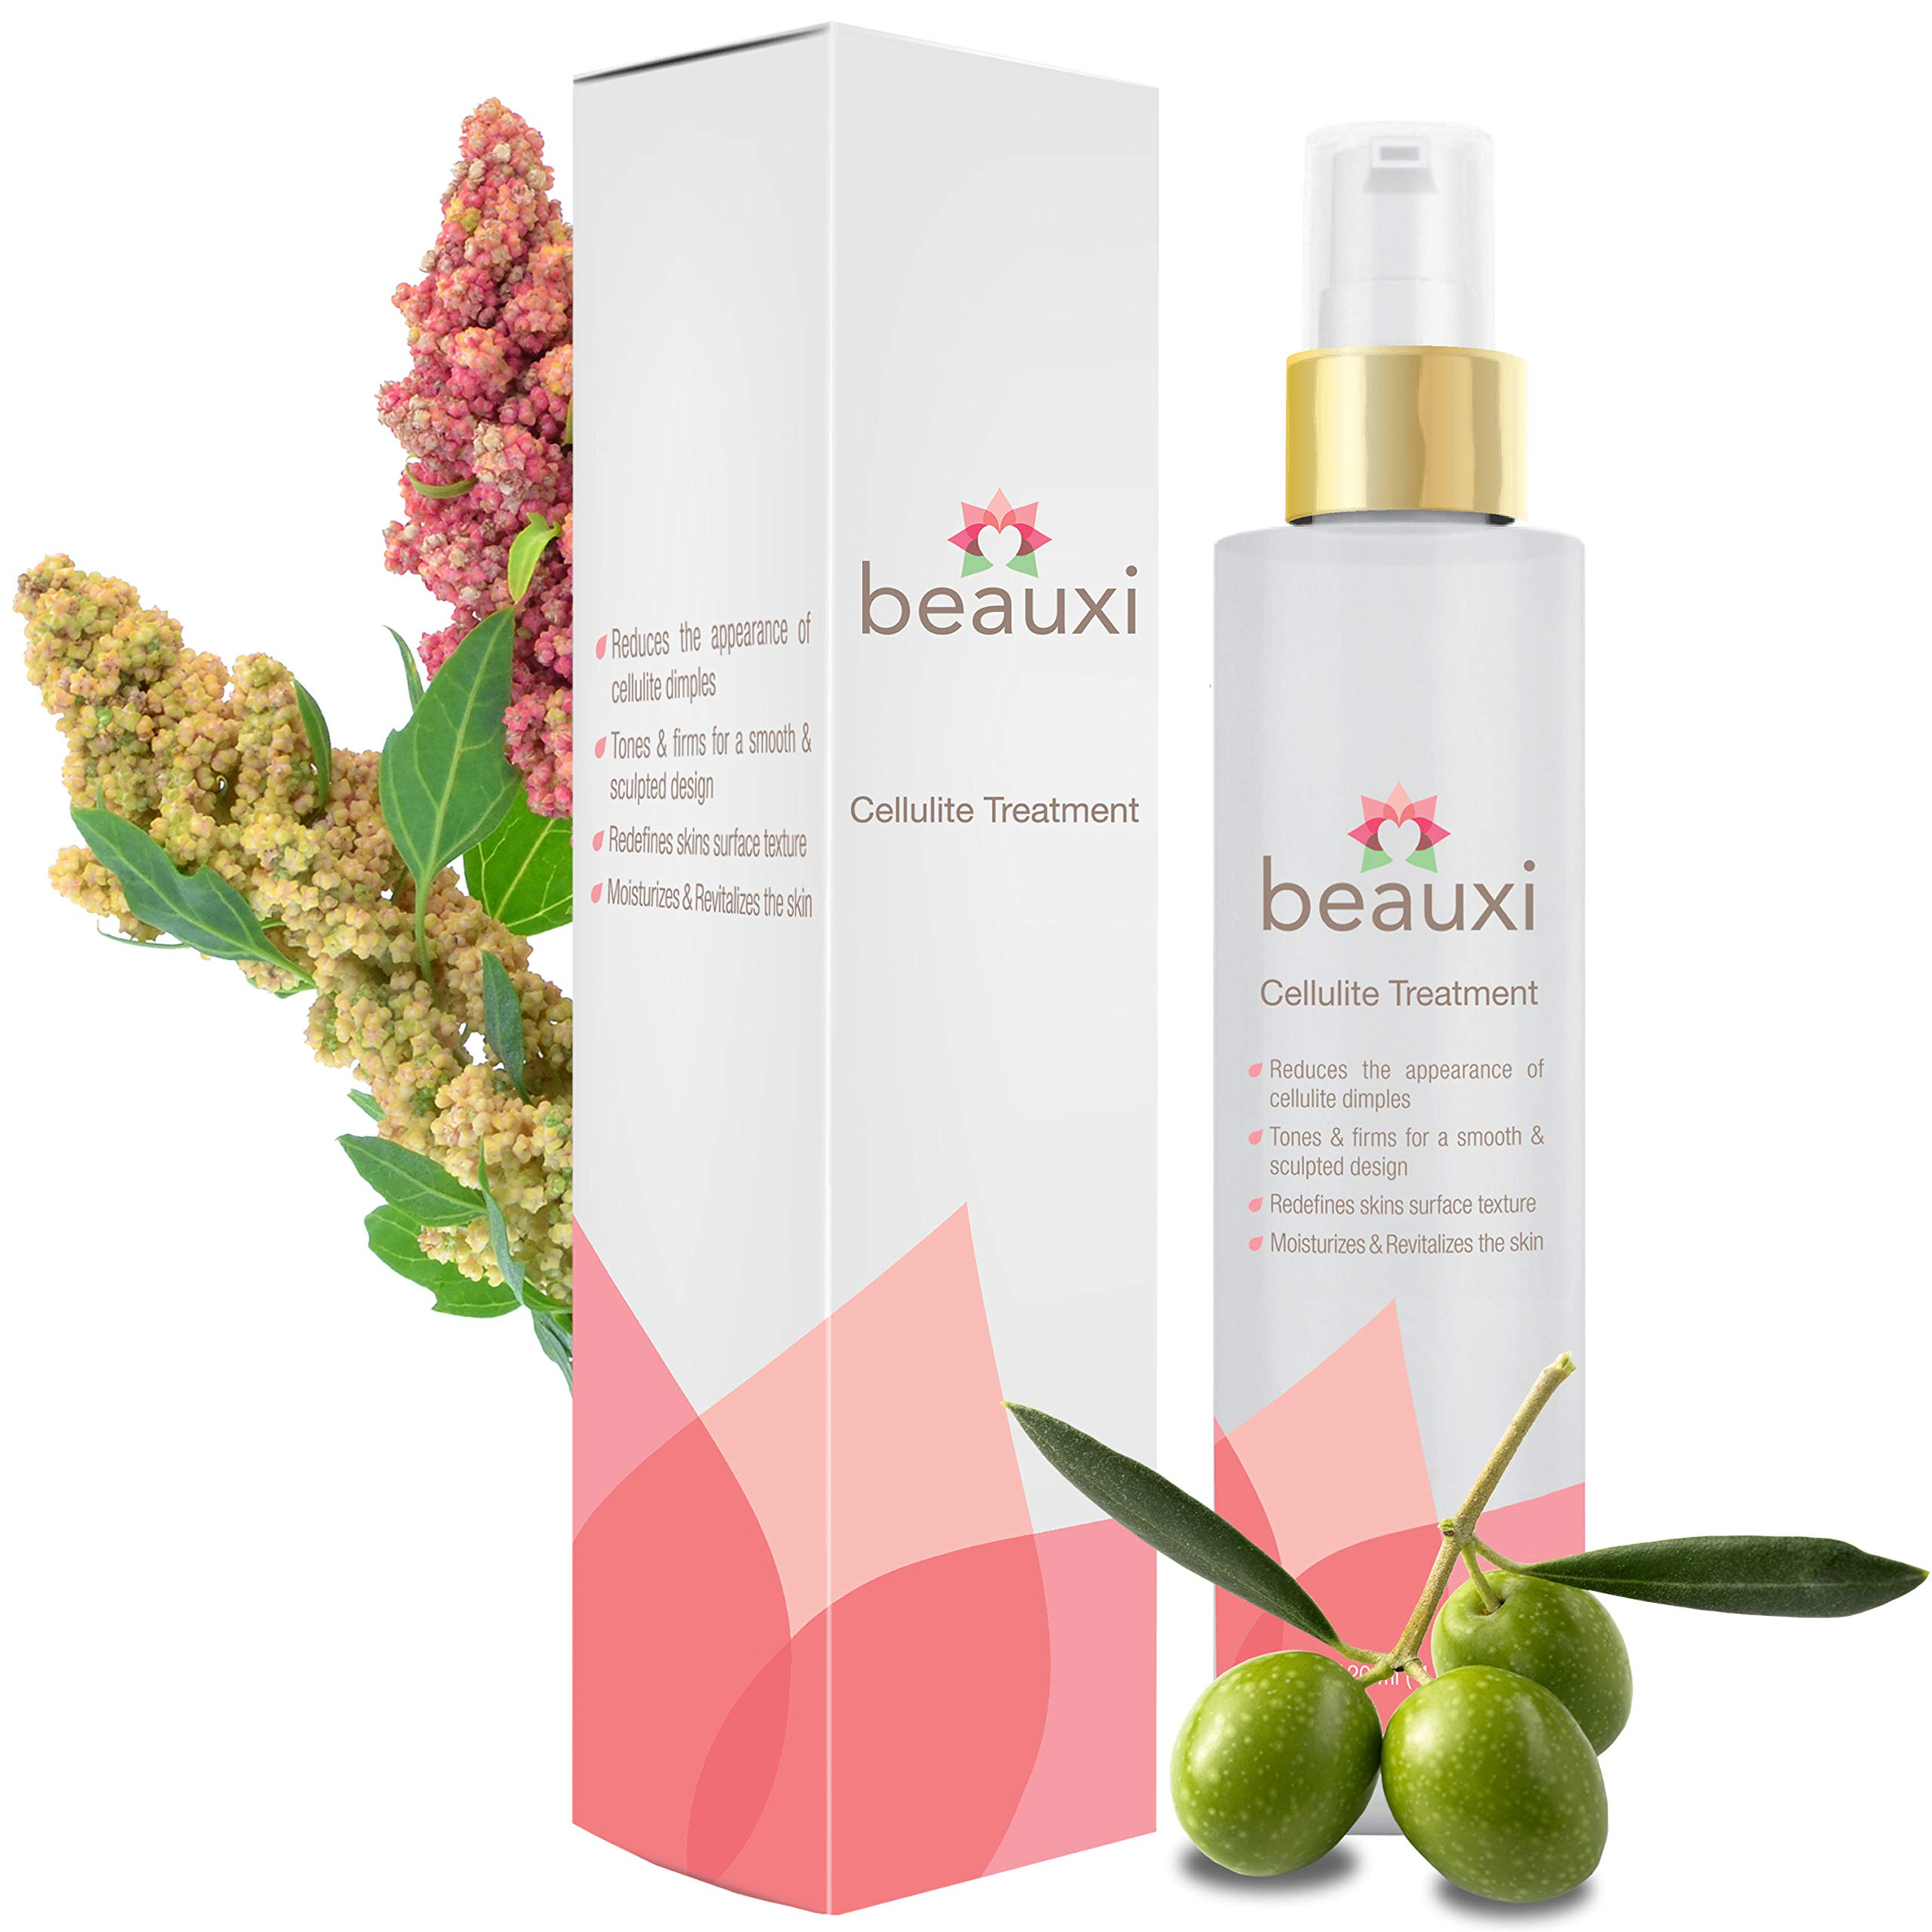 beauxi Cellulite Cream combines the natural, active ingredients intent of lessening the appearance of cellulite and moisturizing the skin by beauxi